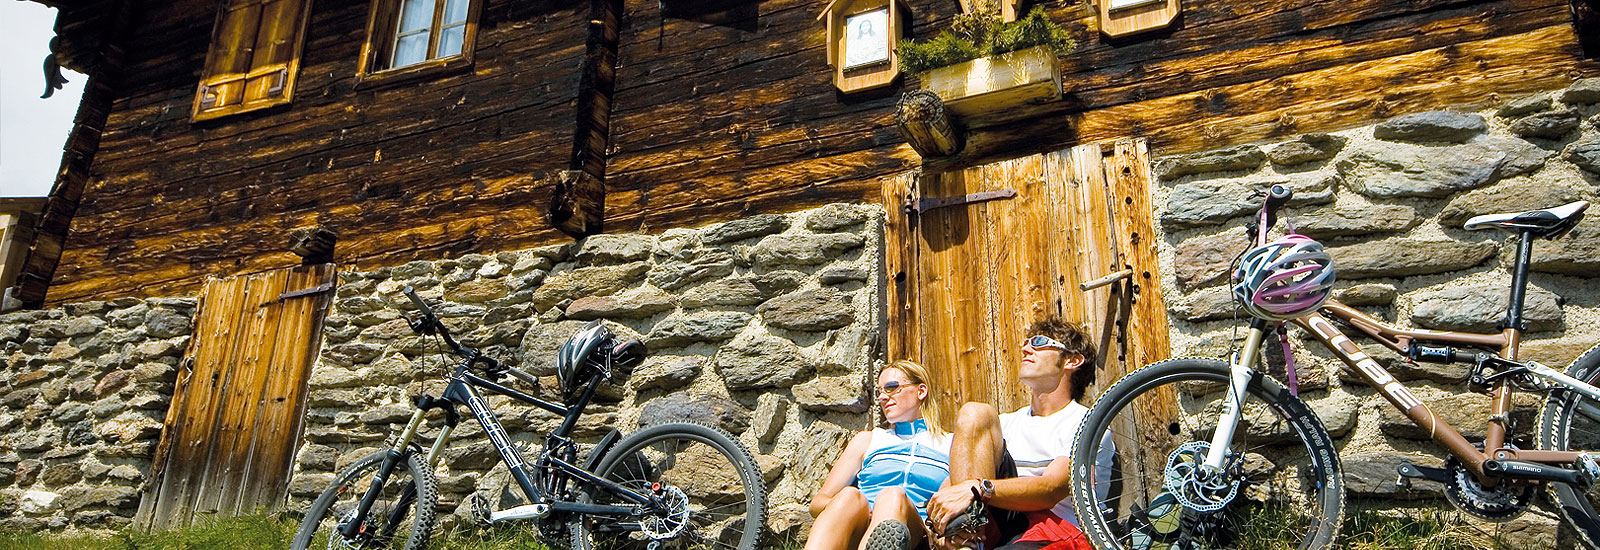 sommer-mountainbiken-rast